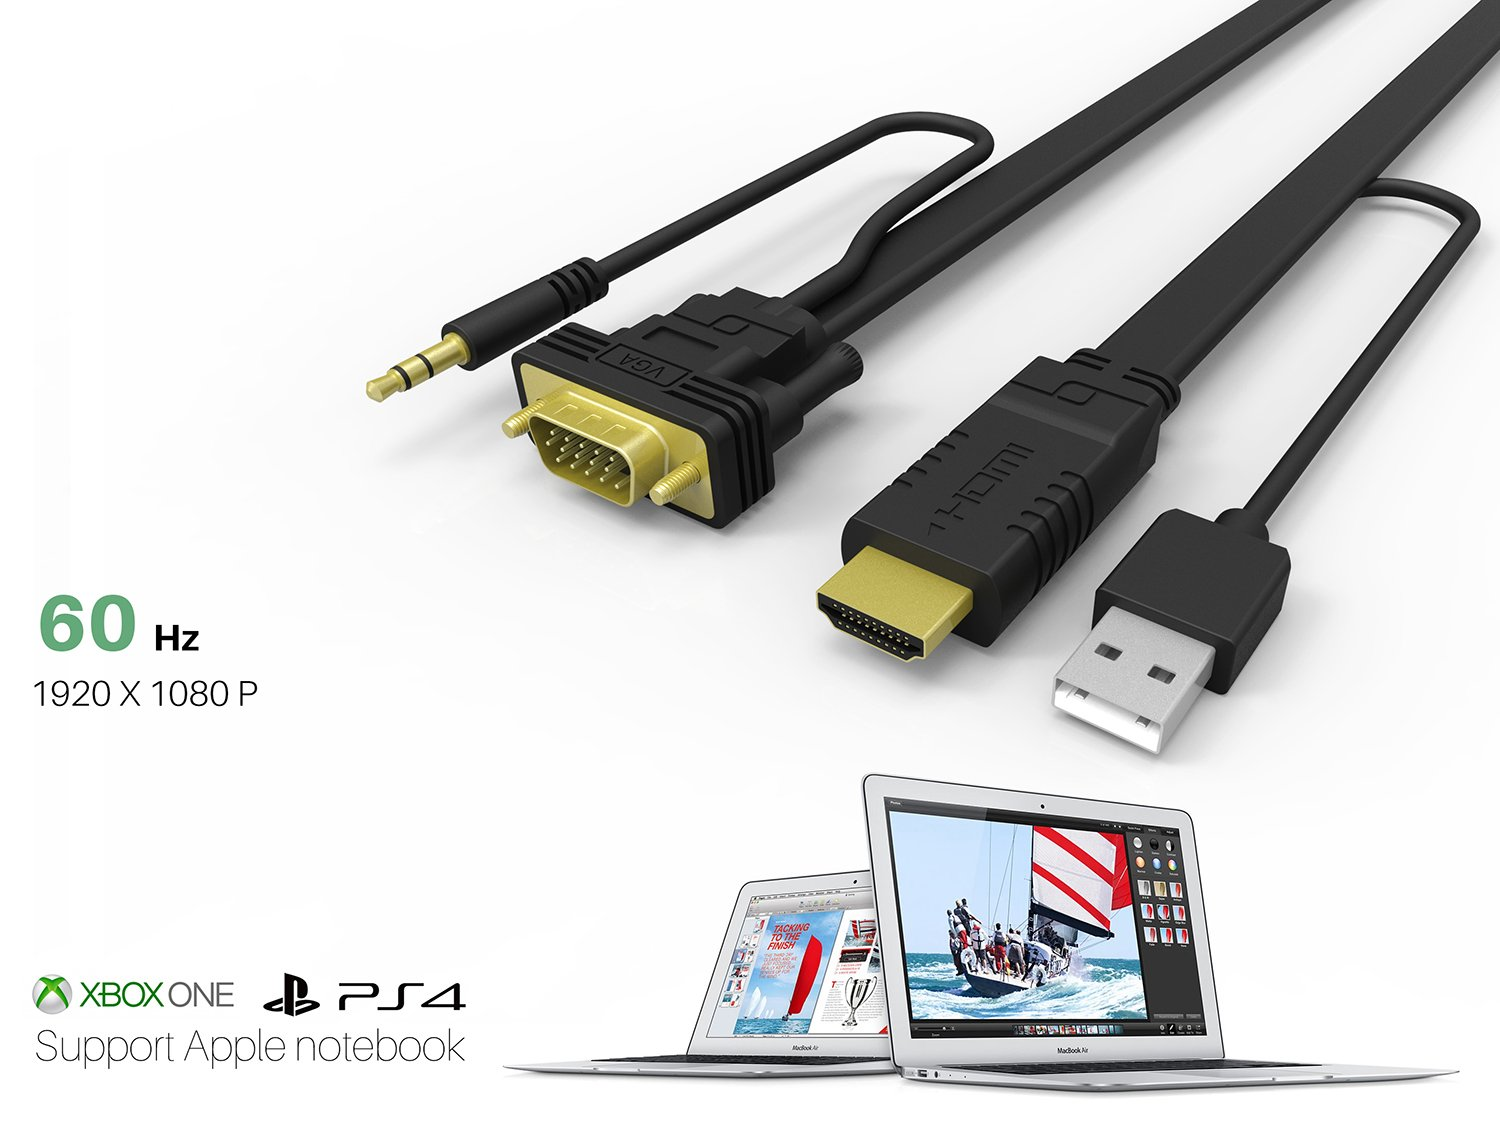 NewBEP HDMI to VGA Cable Adapter with Audio Cord and USB, 1080P HD 6ft/1.8m HDMI Male to VGA Male Converter Cord Support Apple Mackbook Sony PS2 PS3 PS4 Xbox Notebook PC DVD Player Laptop TV by NewBEP (Image #4)